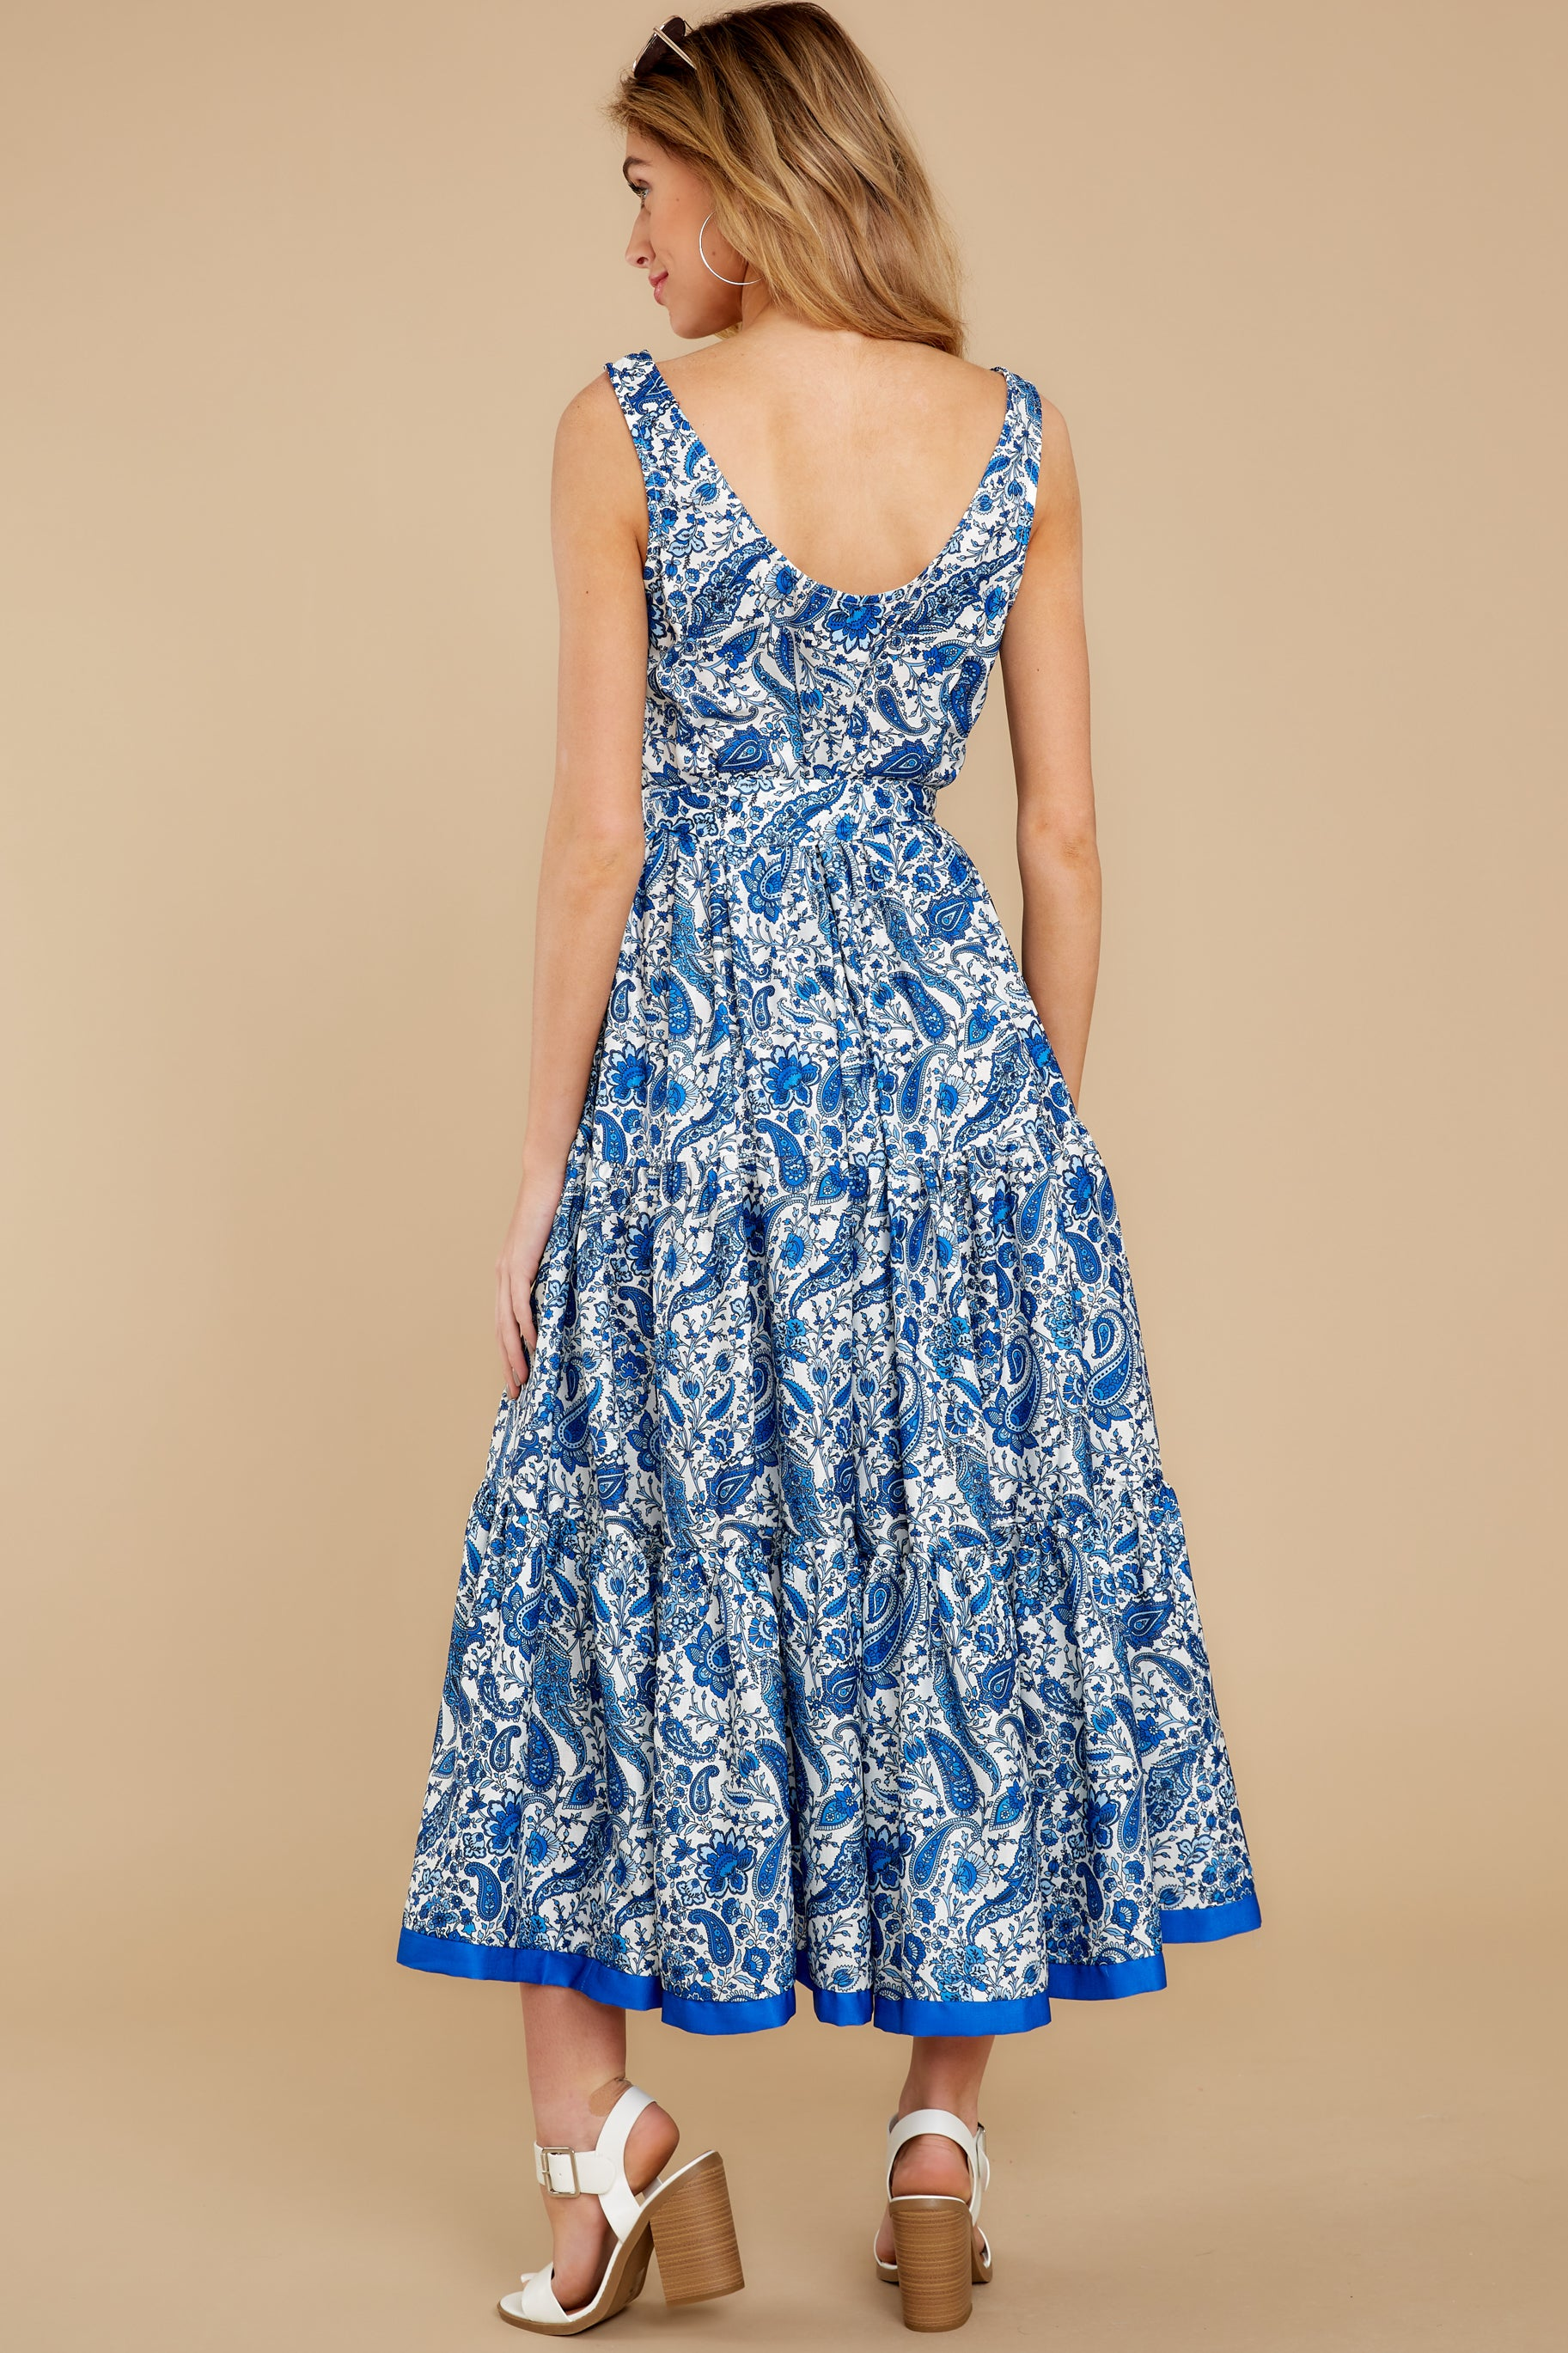 8 Noticing You Blue Multi Print Maxi Dress at reddress.com